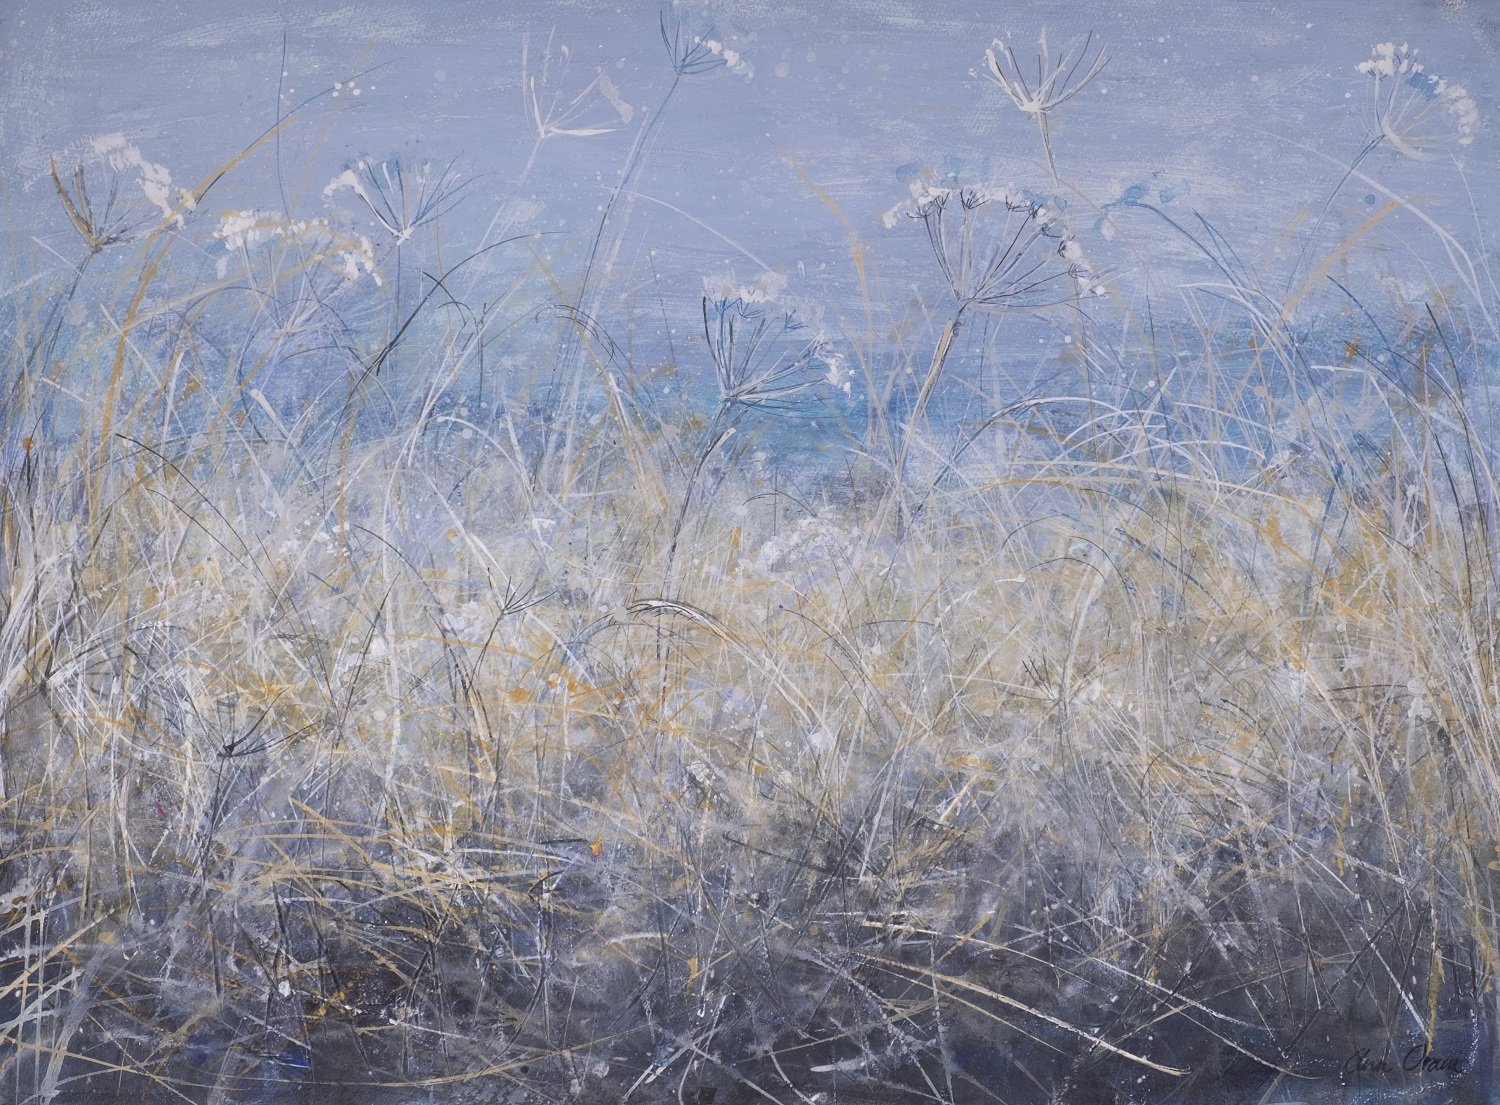 'Frosted Grasses and Seedheads' Ann Oram Acrylic and ink on textured ground, on paper, 56x75cm, 2017